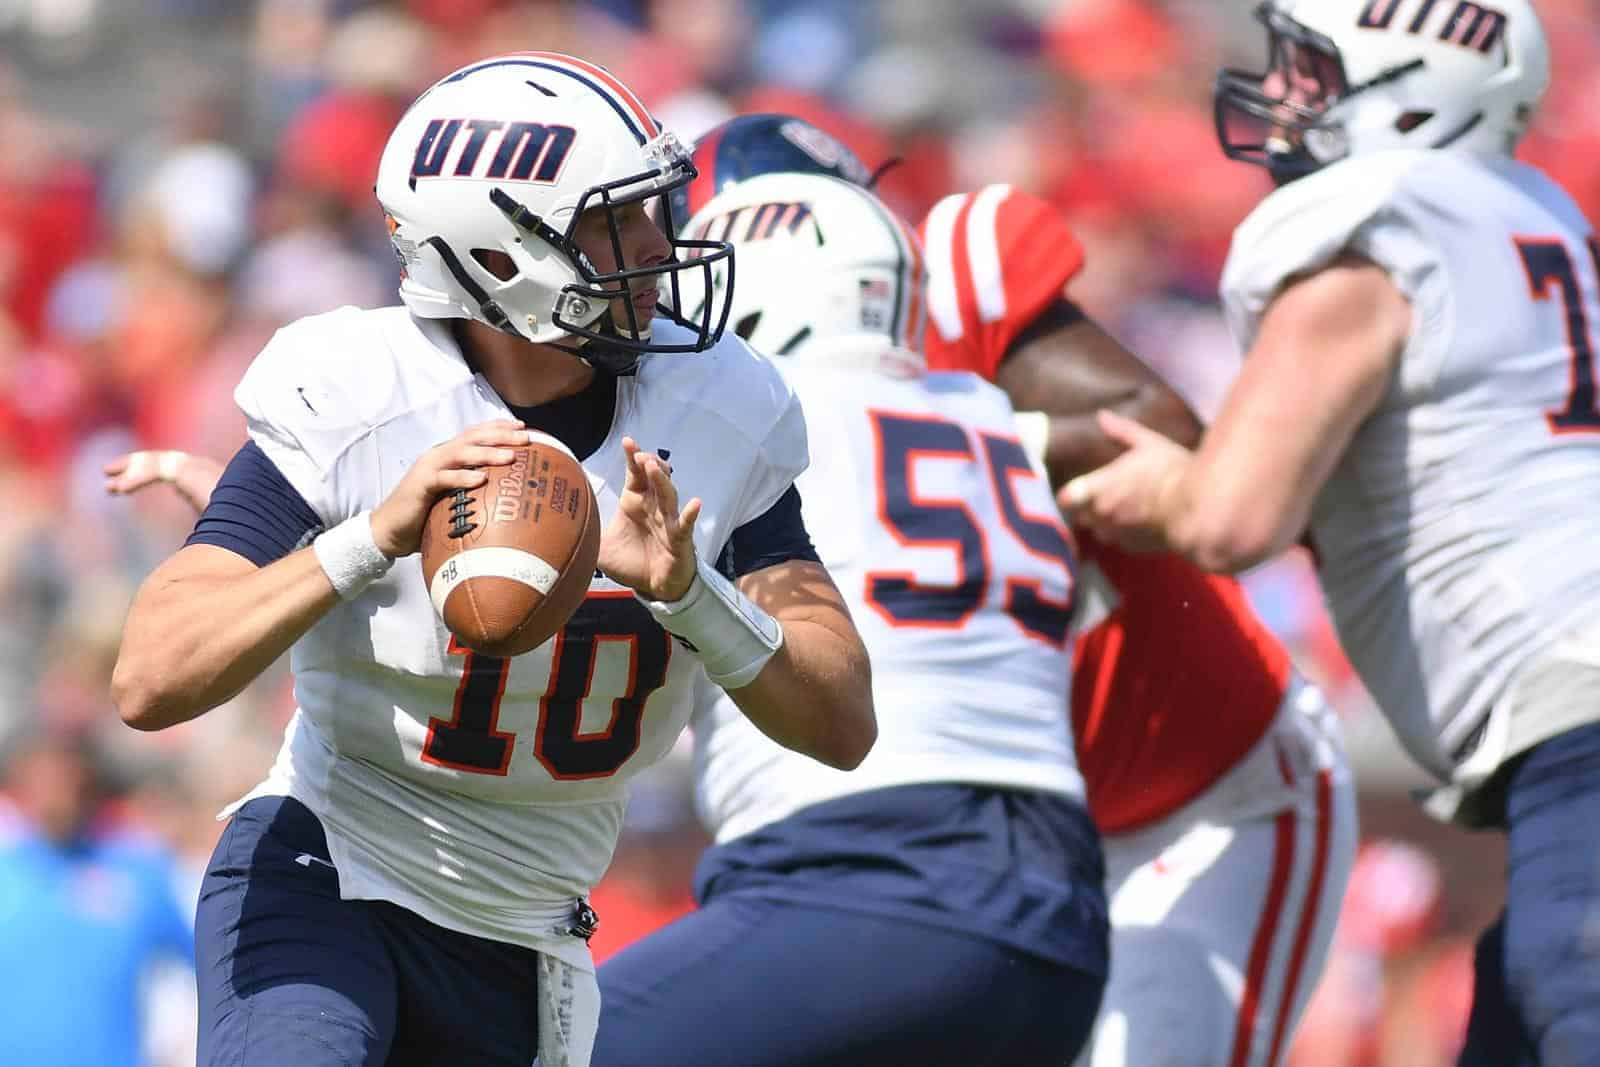 College Football Schedule: UT Martin